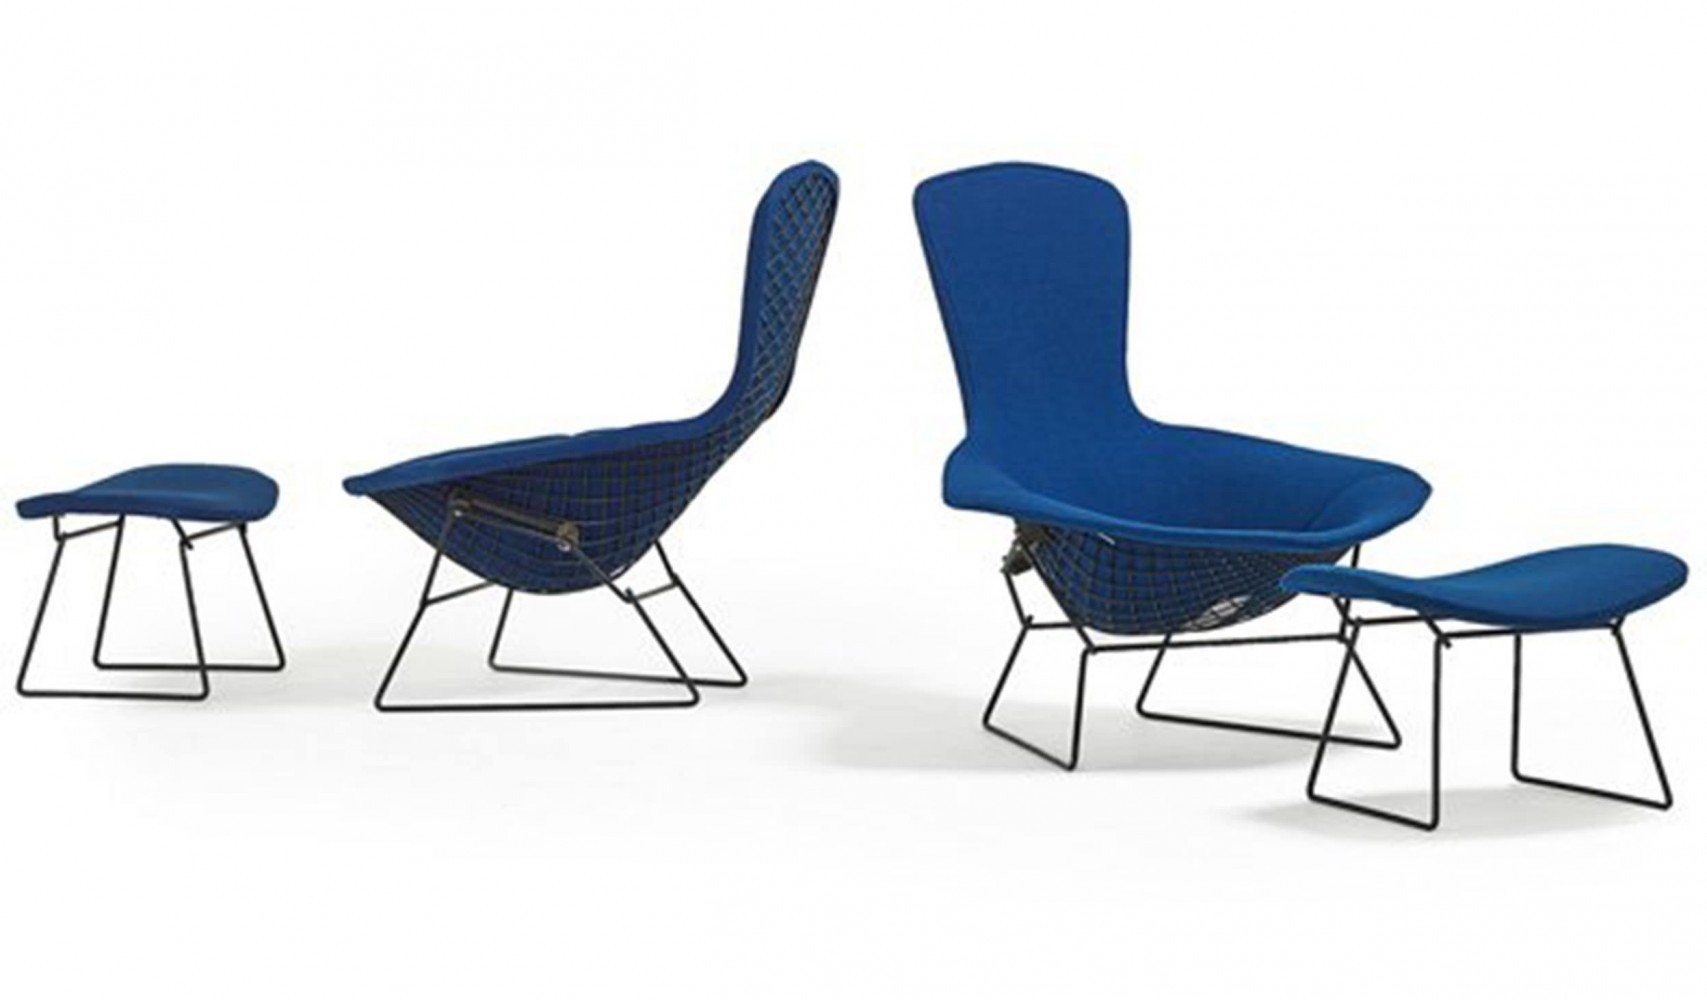 A Pair of Bird Chairs and Ottomans designed by Harry Bertoia